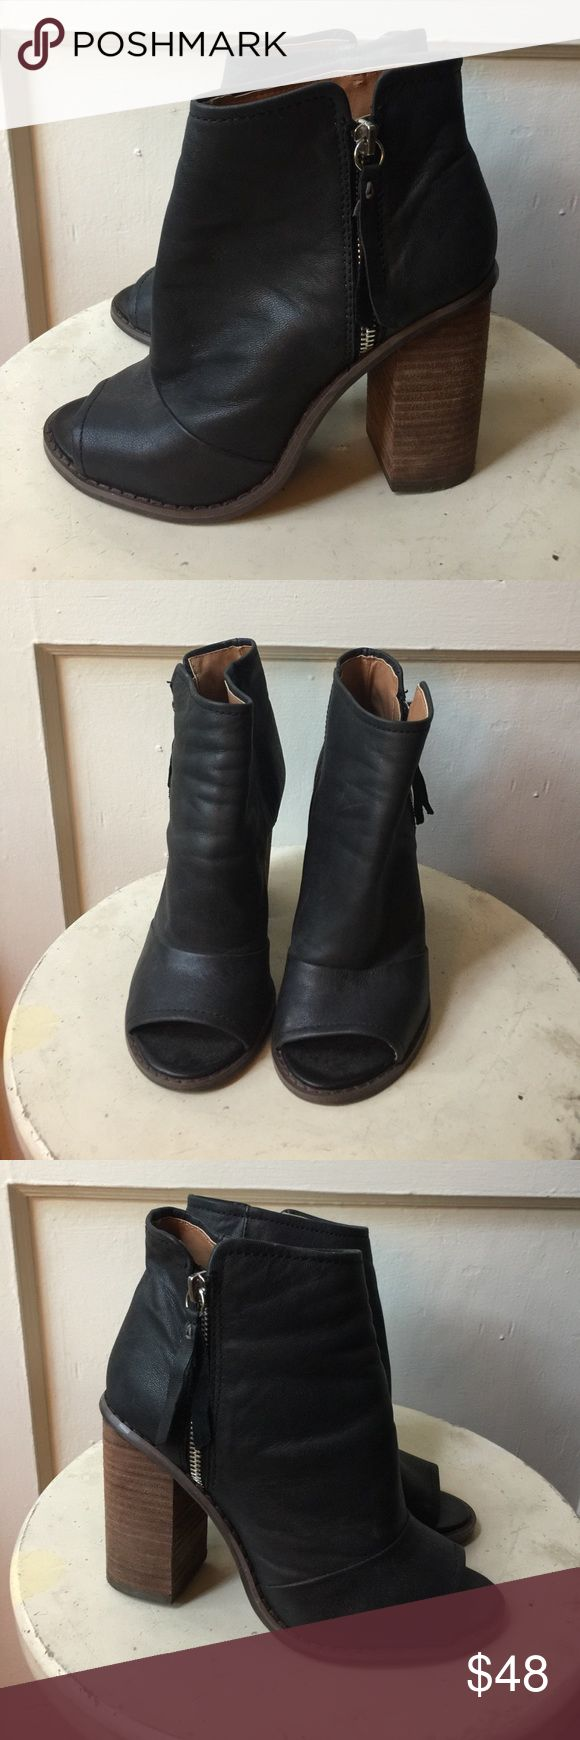 KDB Kelsi Dagger Peep Toe Wood Heel Zip Up Booties Worn a couple times. Excellent Condition. 4 inch heel. True to size. Kelsi Dagger Shoes Ankle Boots & Booties